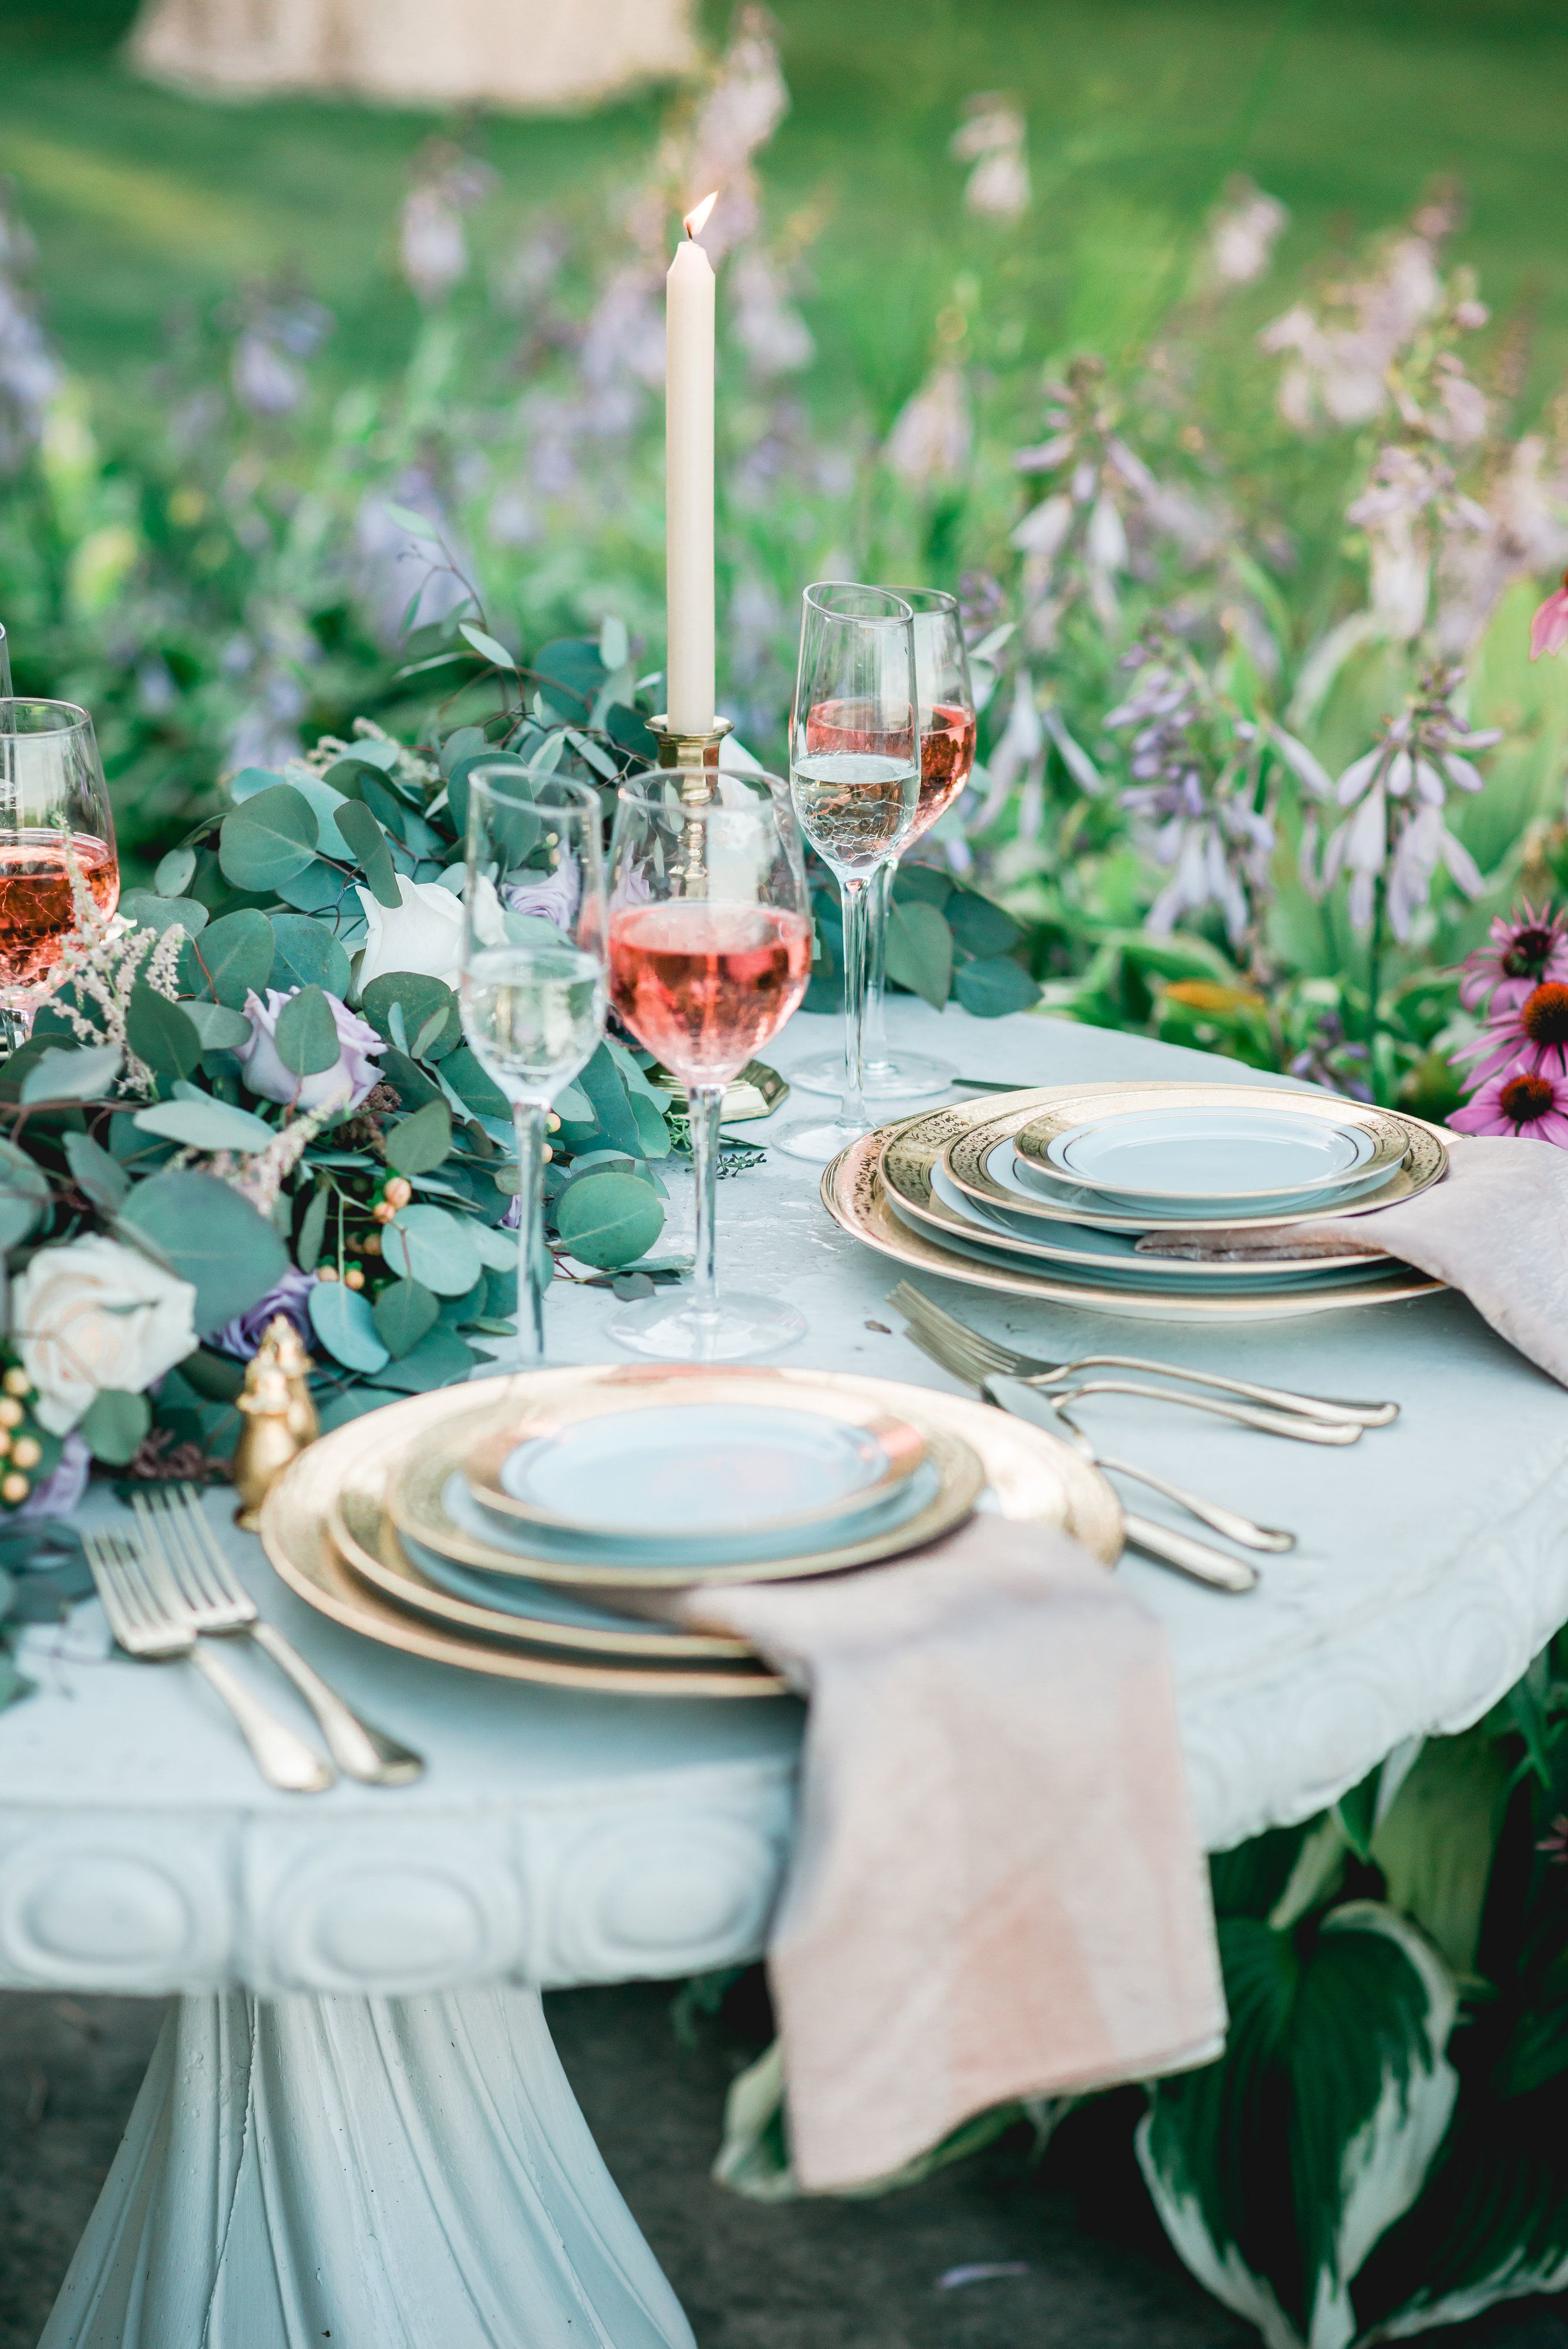 [M&M Special Events] [Claire E. Walden] [Kallidoscope Photography] [Waukesha Floral & Greenhouse]